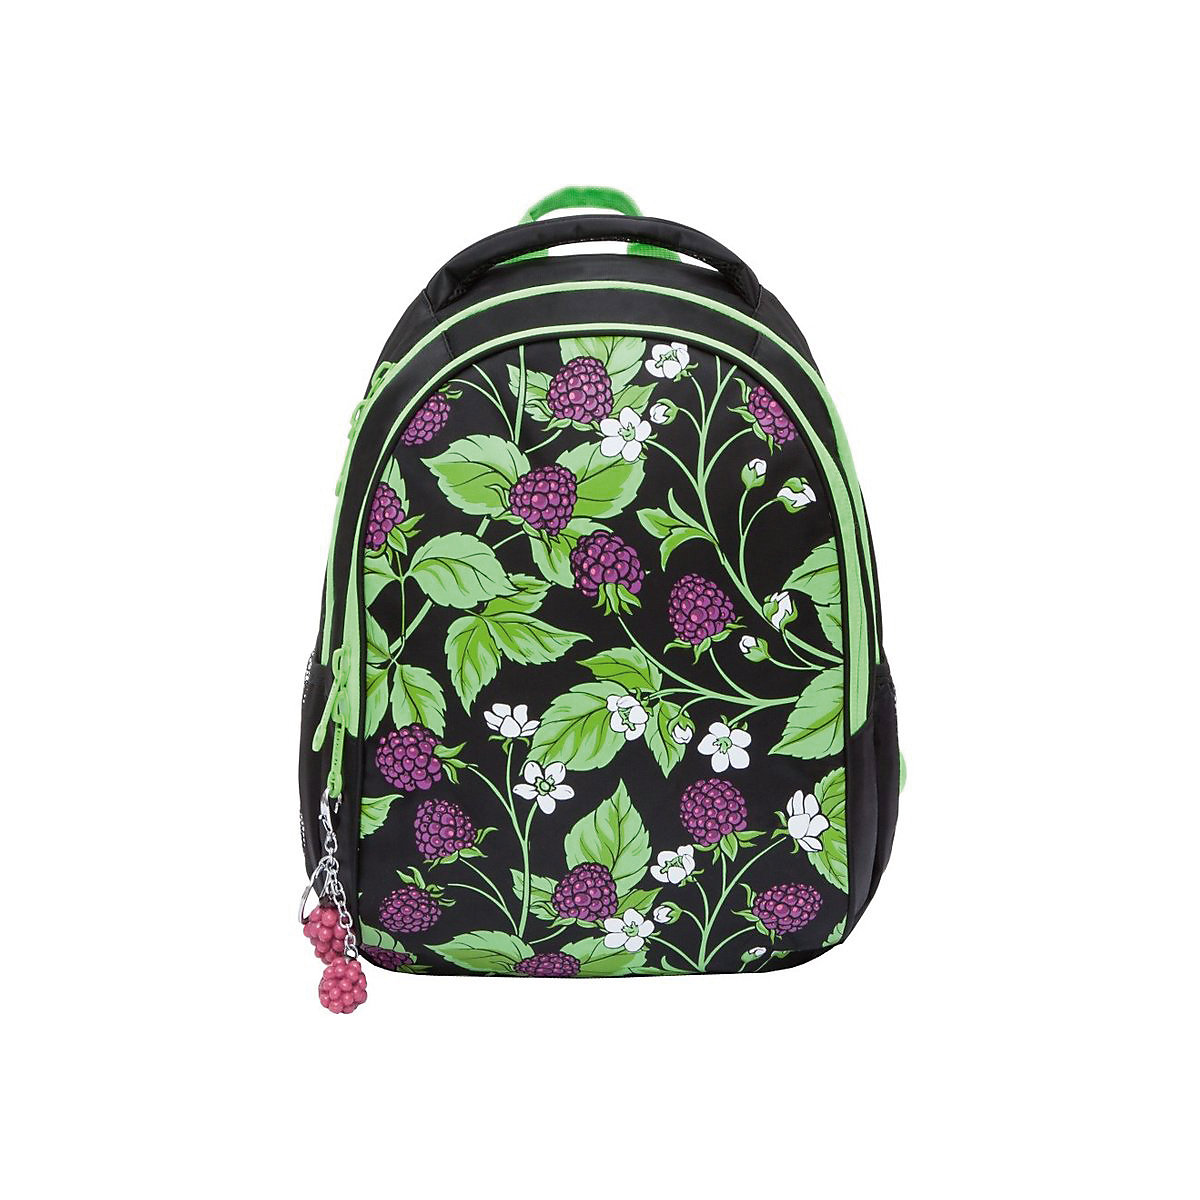 School Bags GRIZZLY 8333824 Schoolbag Backpack Orthopedic Bag For Boy And Girl Animals Flowers MTpromo